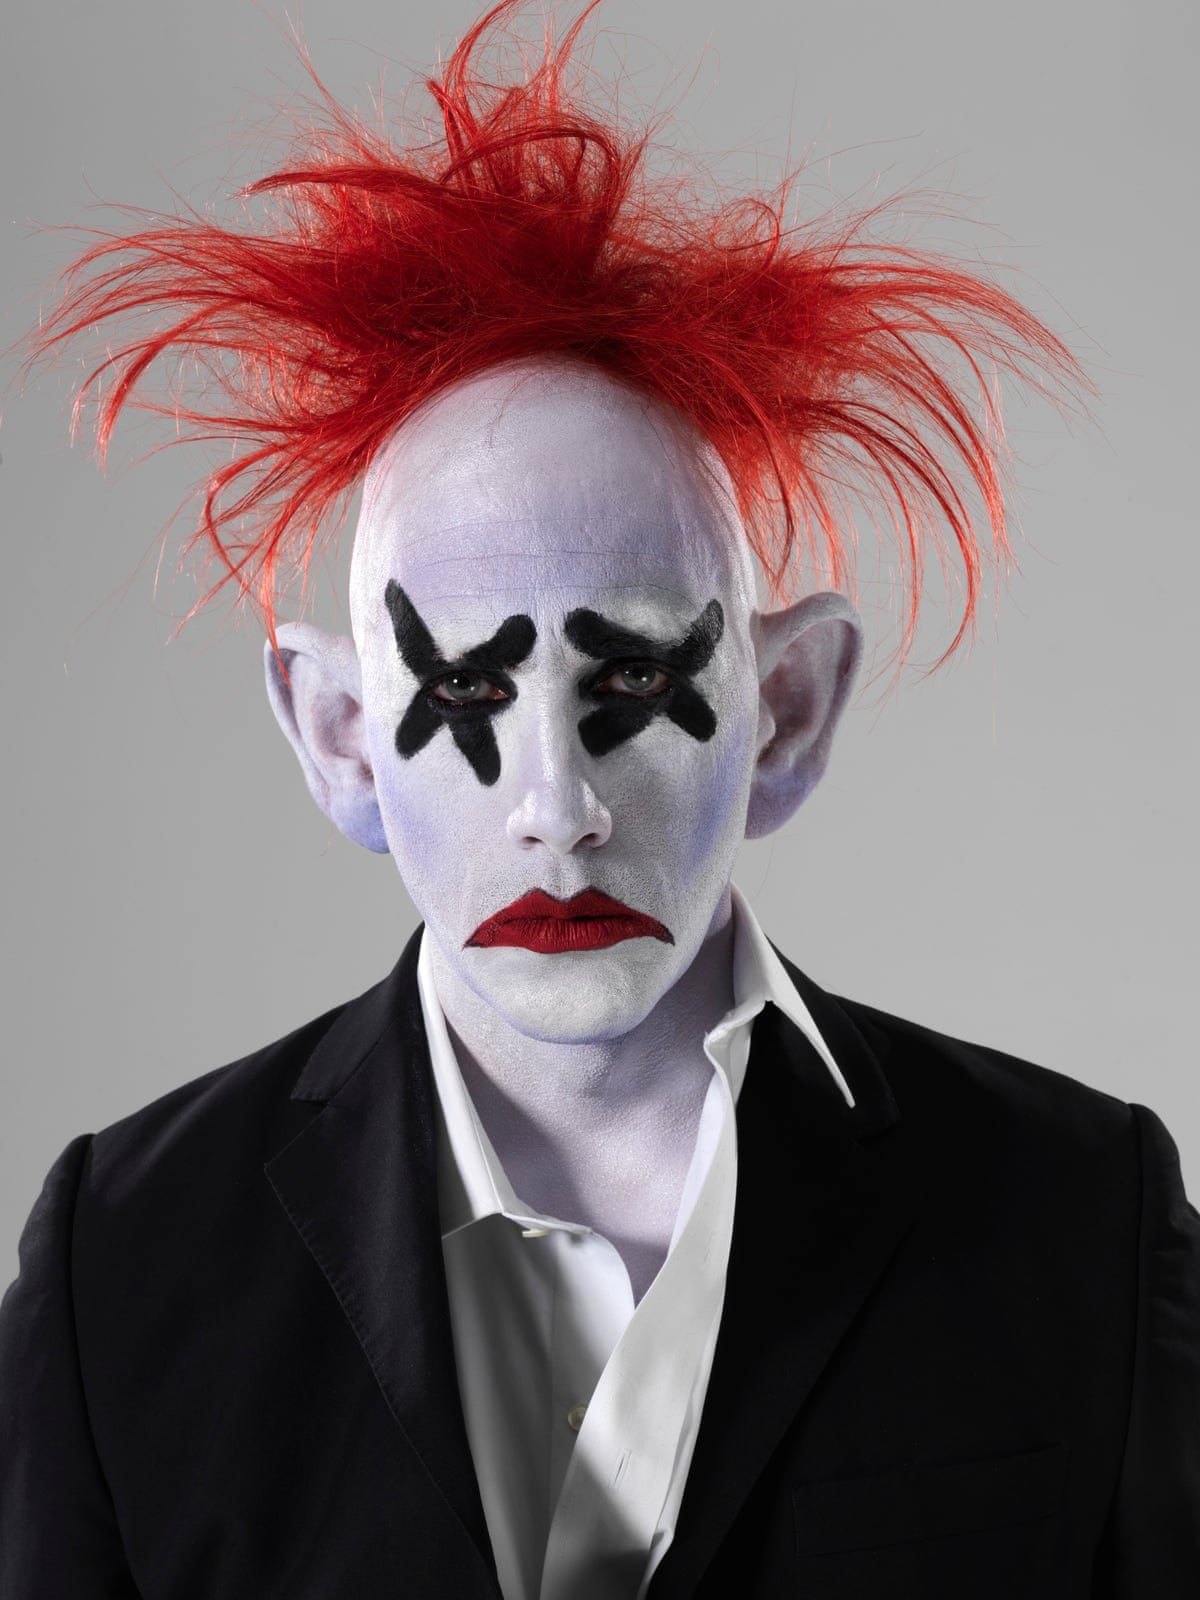 World Class Regis >> Face off: extreme clown portraits – in pictures | Art and design | The Guardian